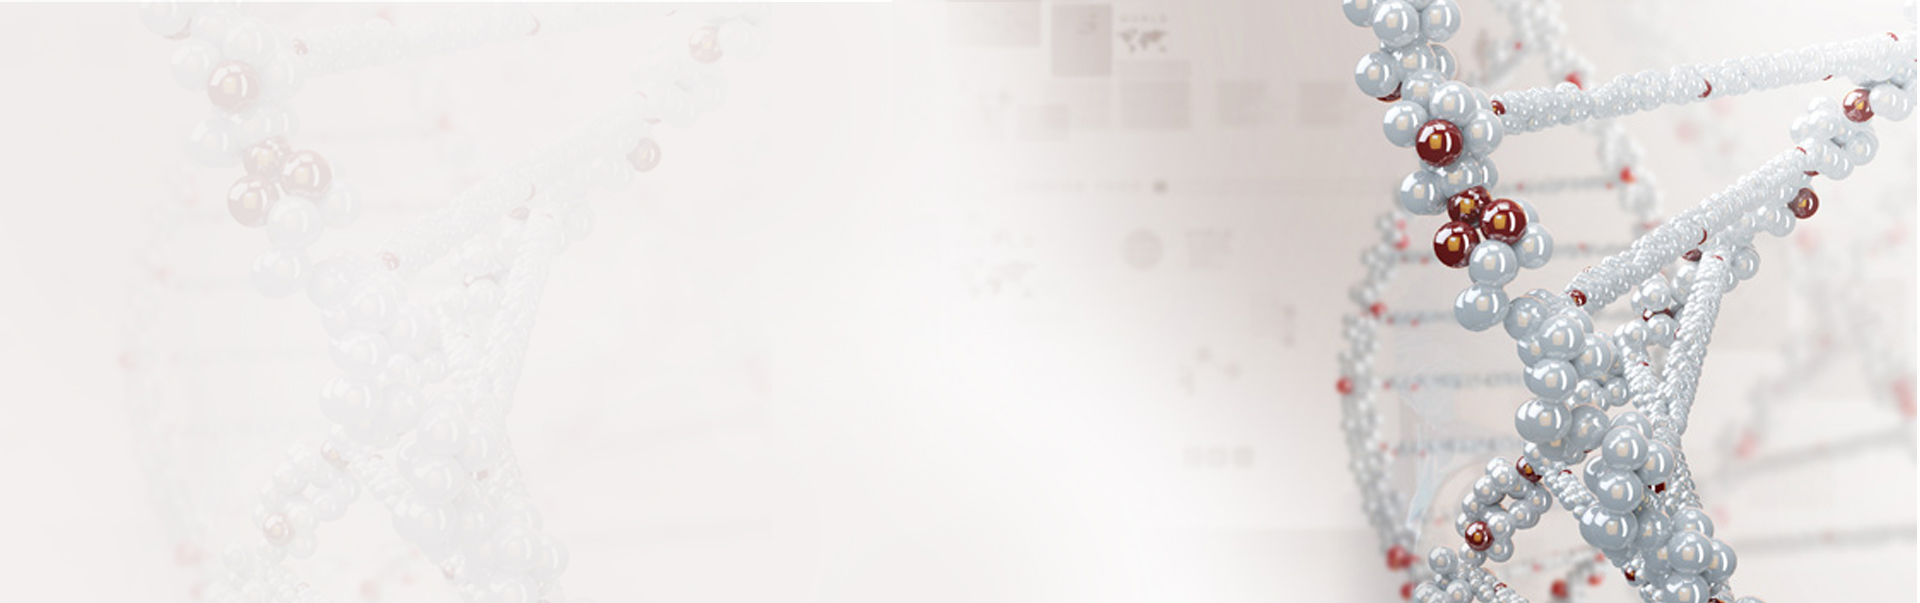 banner2second